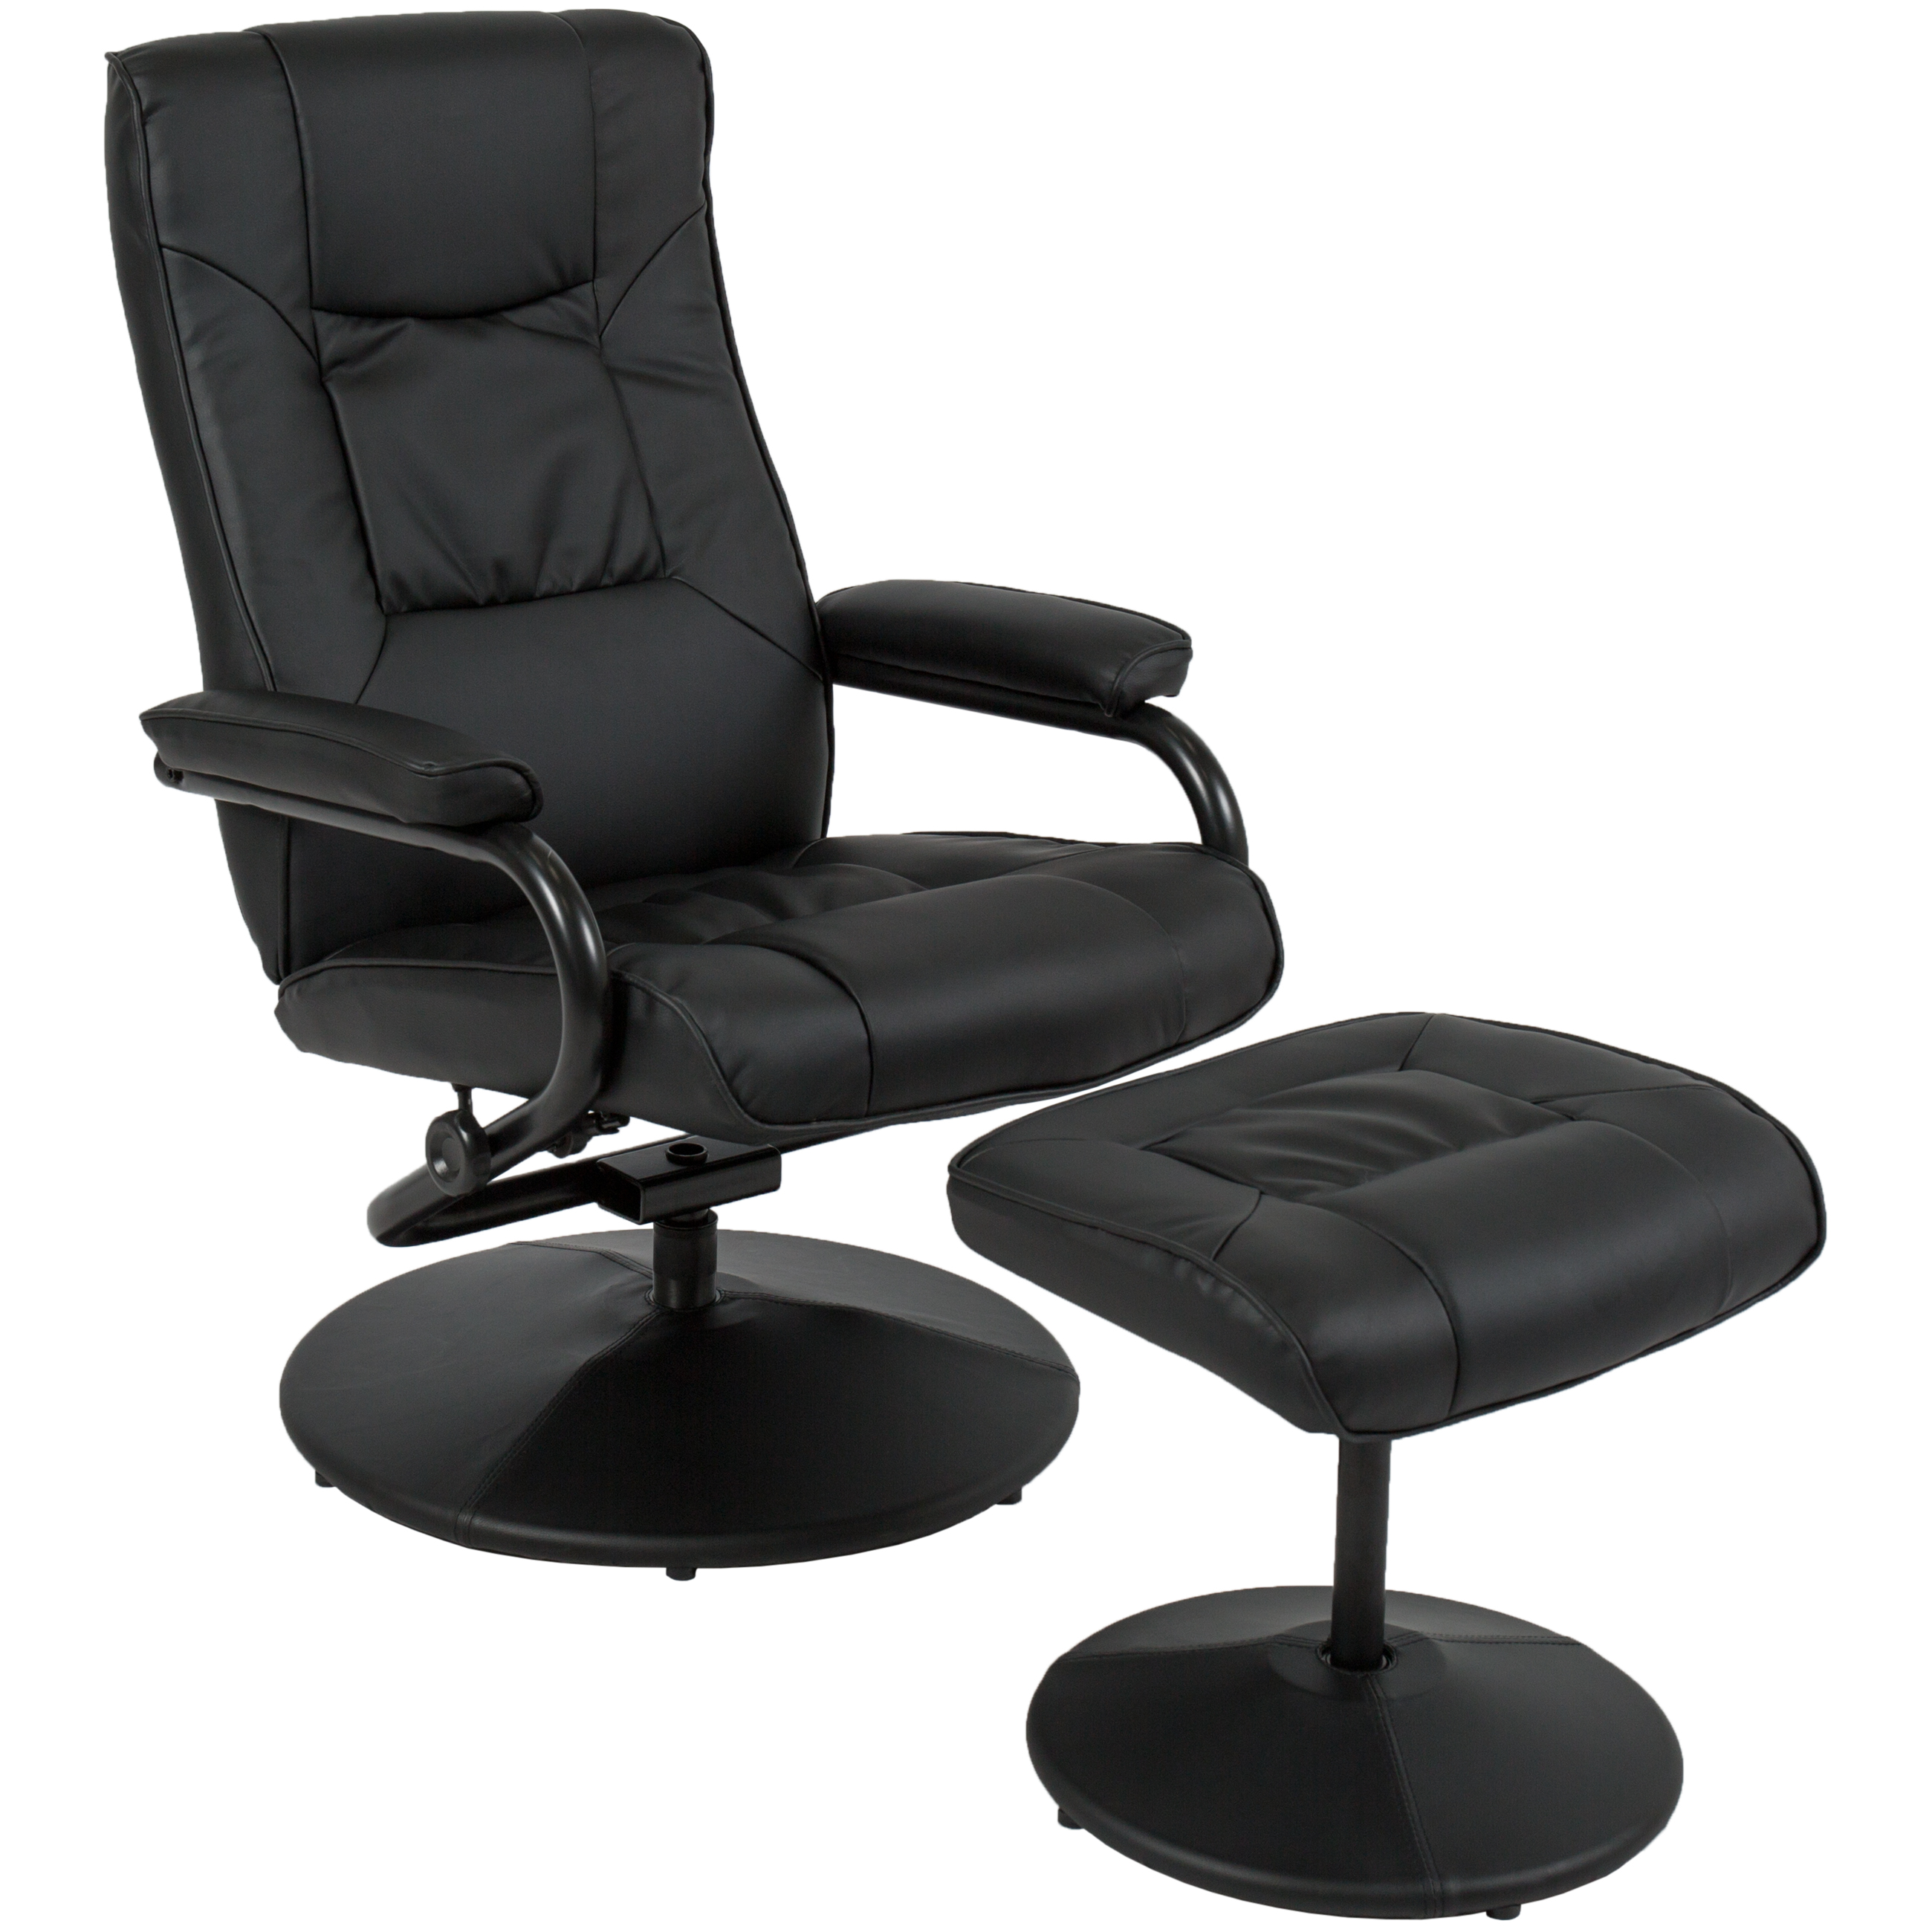 Best Choice Products Leather Swivel Recliner Chair w/ Ottoman Stool (Black)  sc 1 st  Walmart & Recliners - Walmart.com islam-shia.org